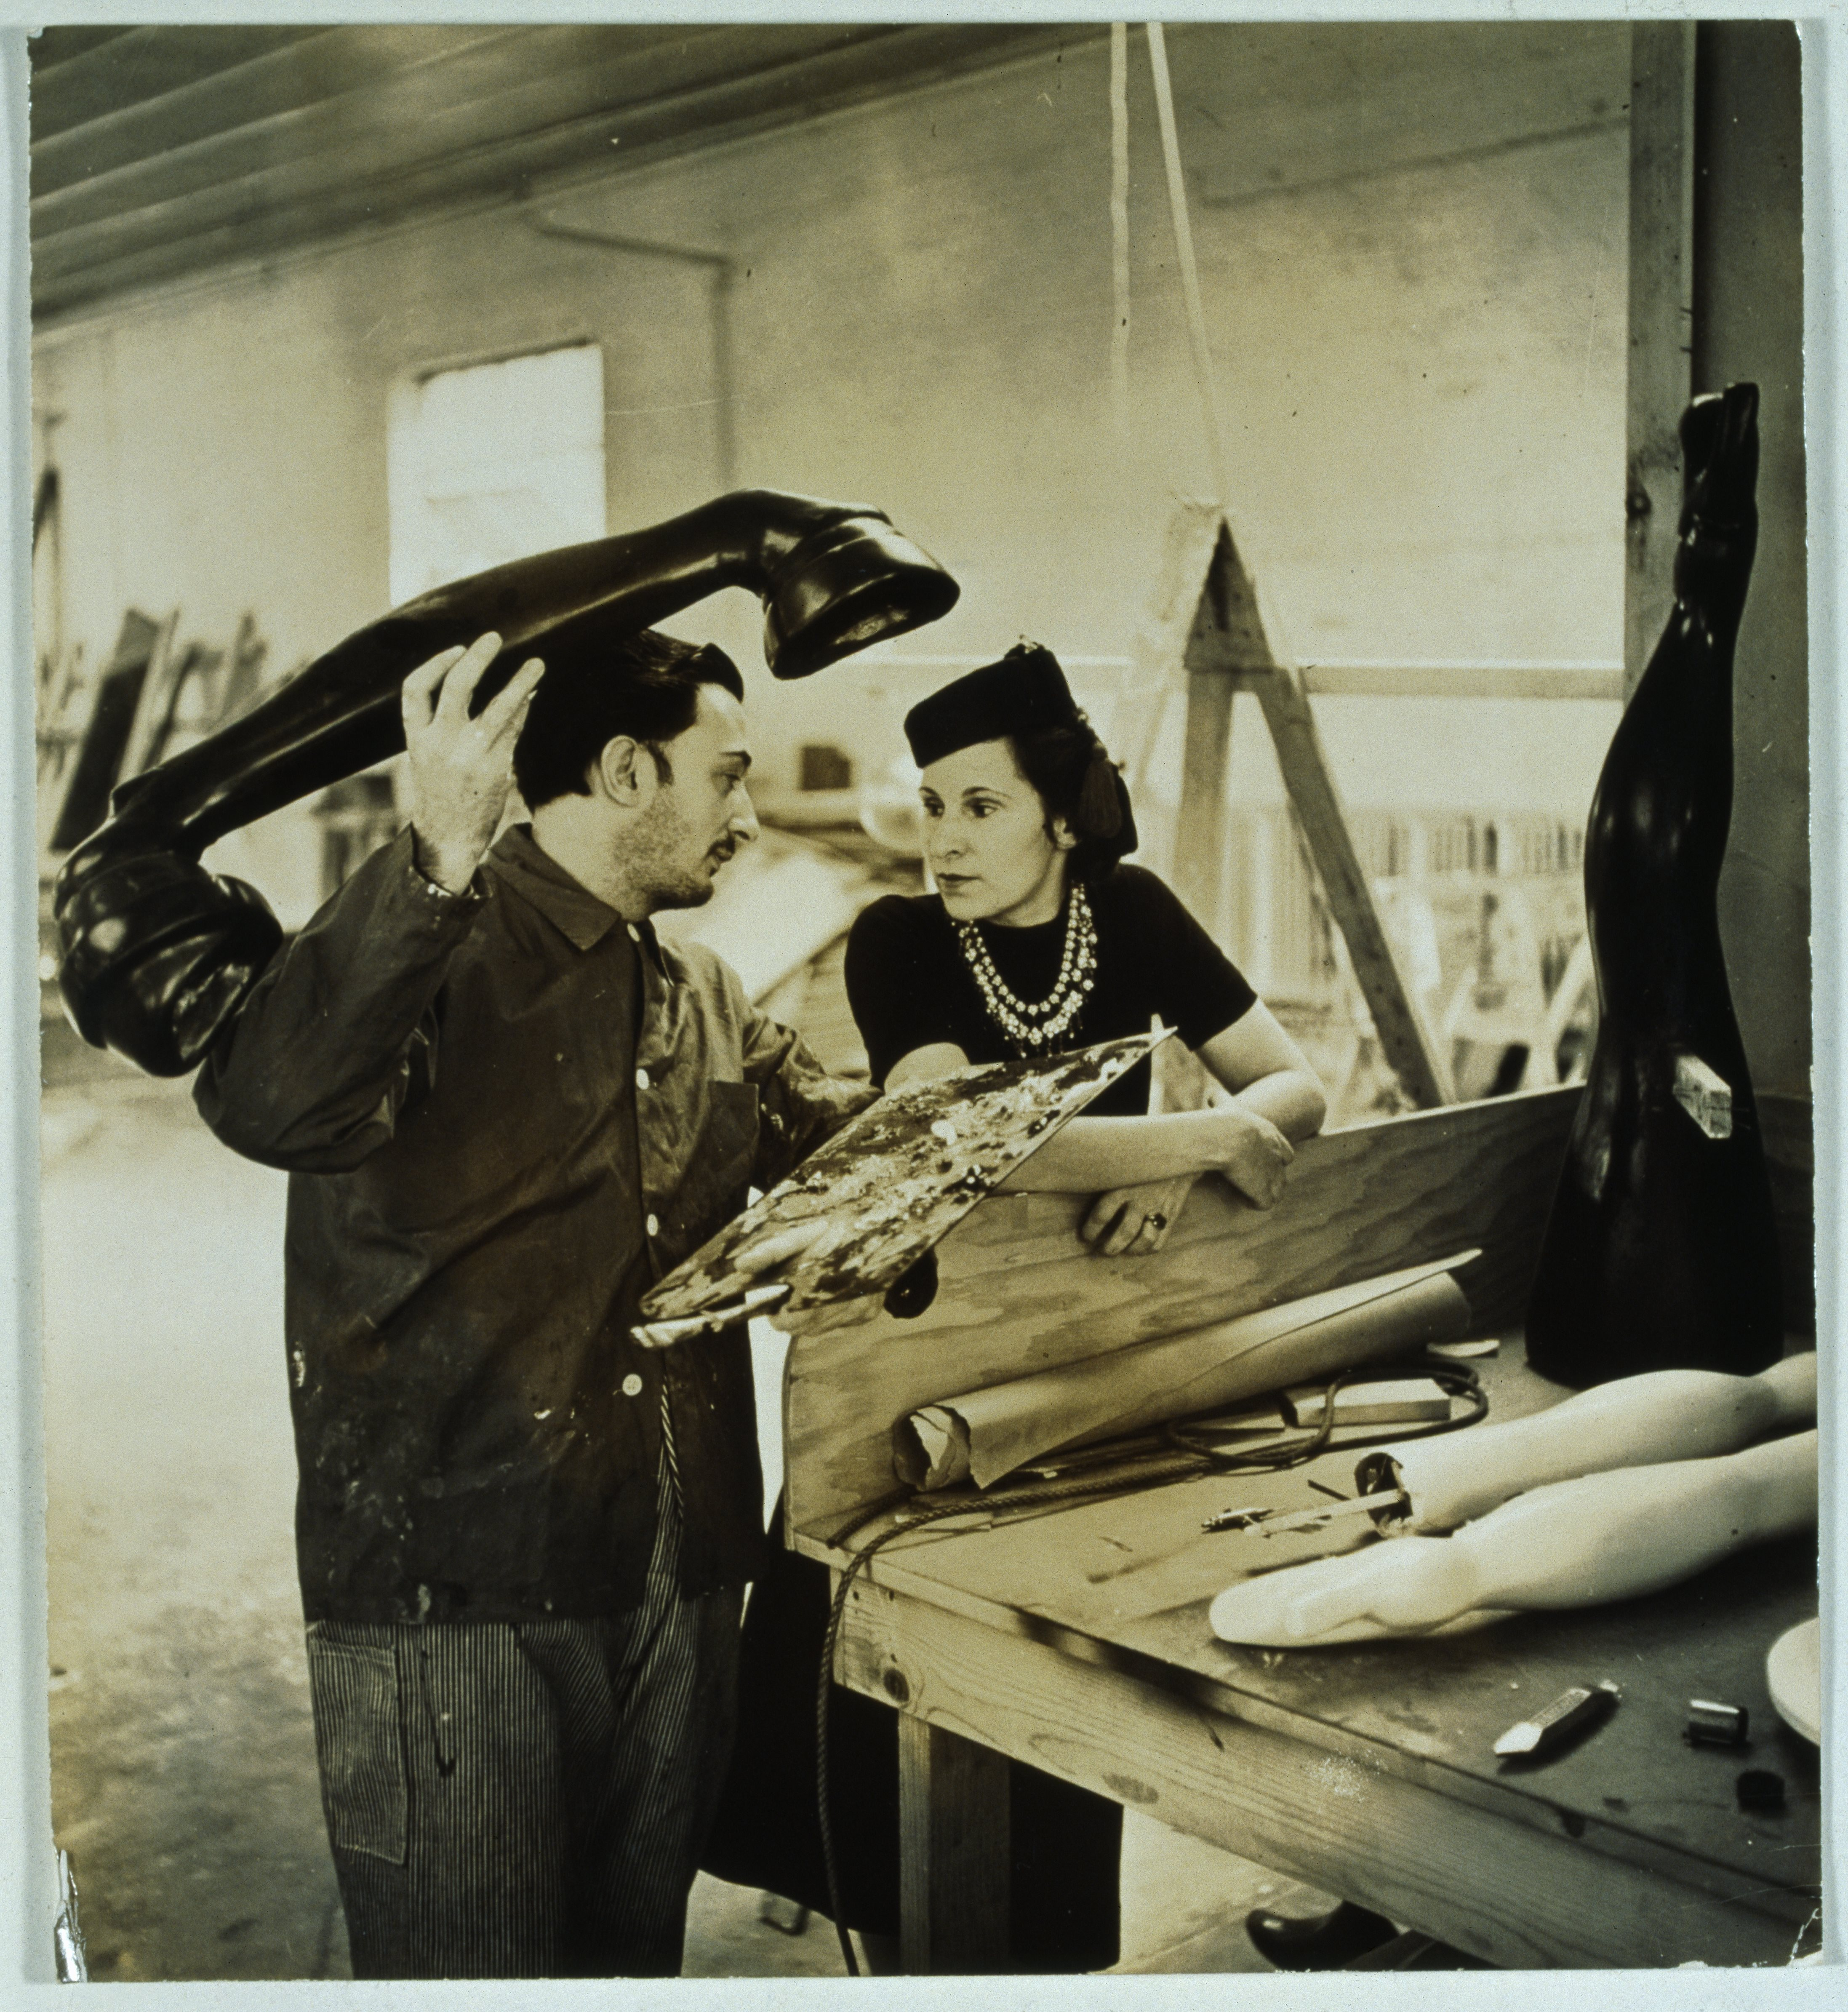 """Salvador Dalí and Gala working on the """"Dream of Venus"""" pavilion. 1939"""